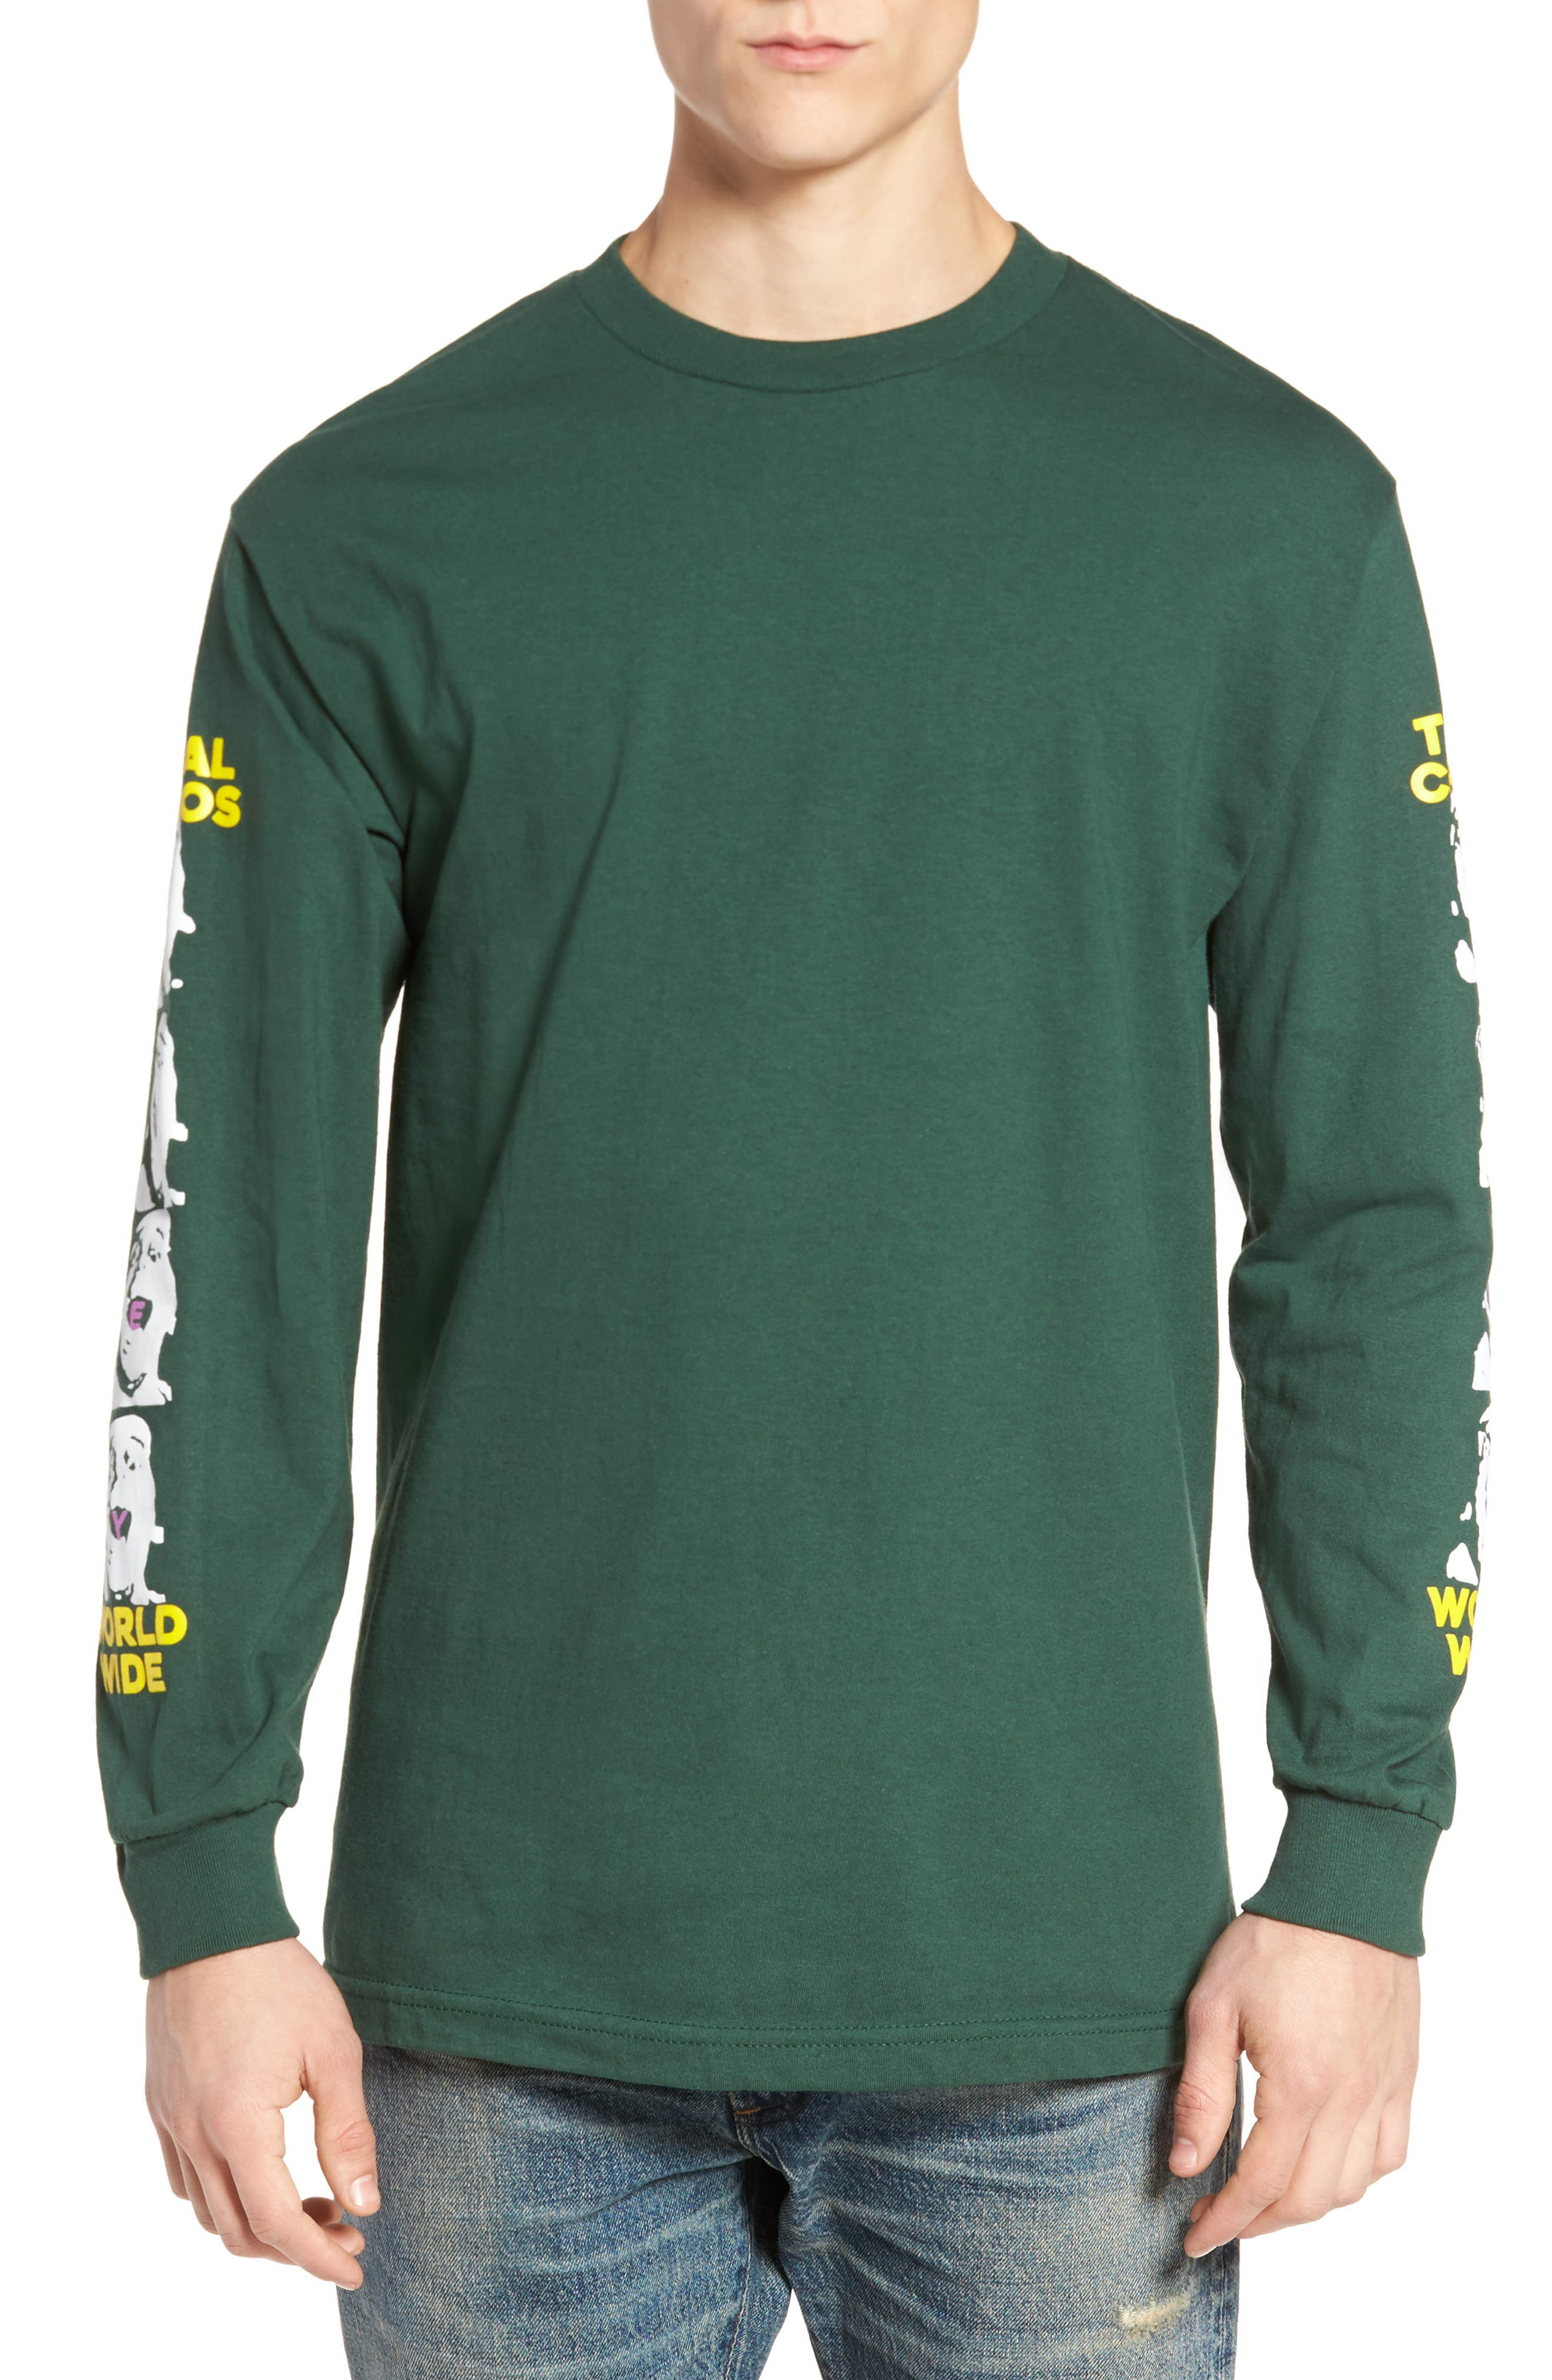 Total Chaos T-Shirt,                         Main,                         color, Forrest Green